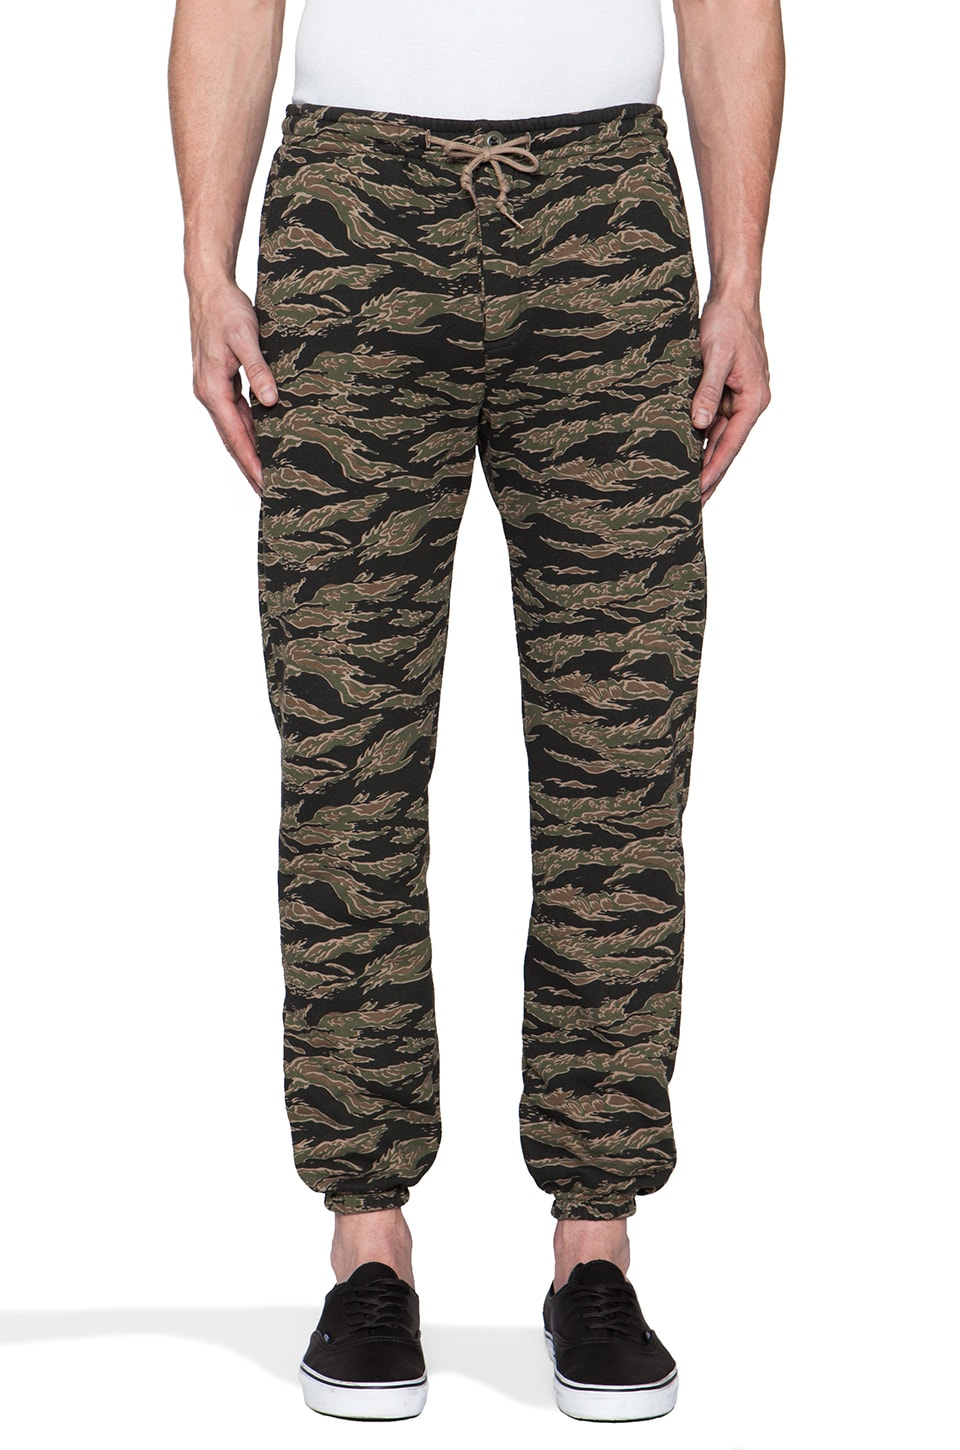 Obey Quality Dissent Fleece Pant in Tiger Camo